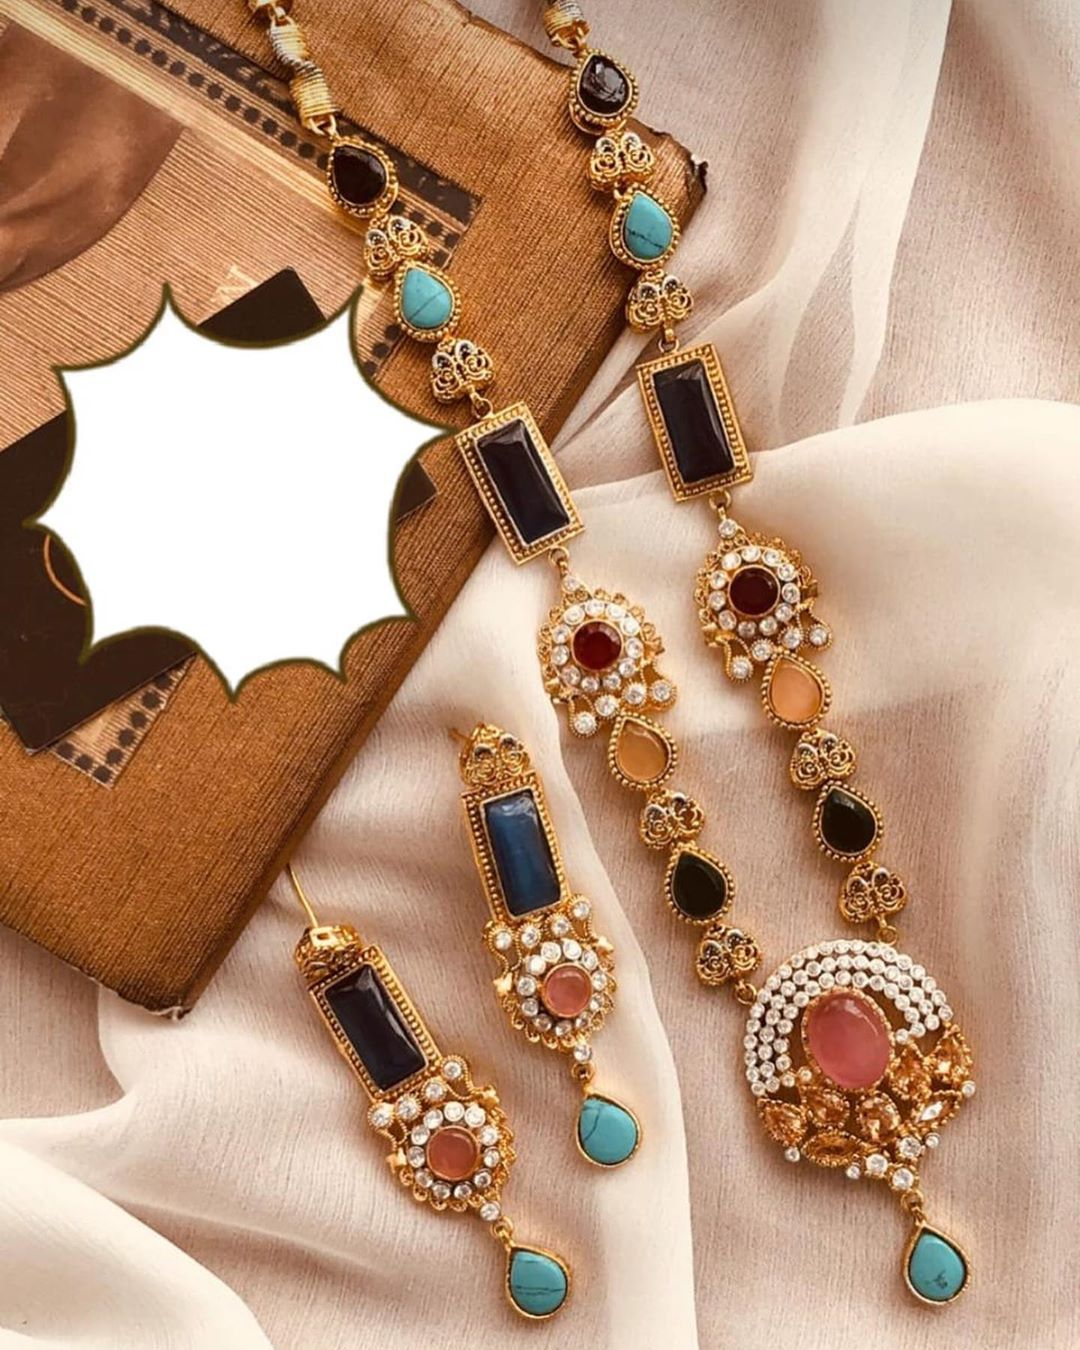 Whatsapp 03333063187 Karachi Delivery Charges 200 Out Of Cities 250 We Ship World Wide Book Order At Website Http In 2020 Jewelry Lover Jewelry Design Jewelry